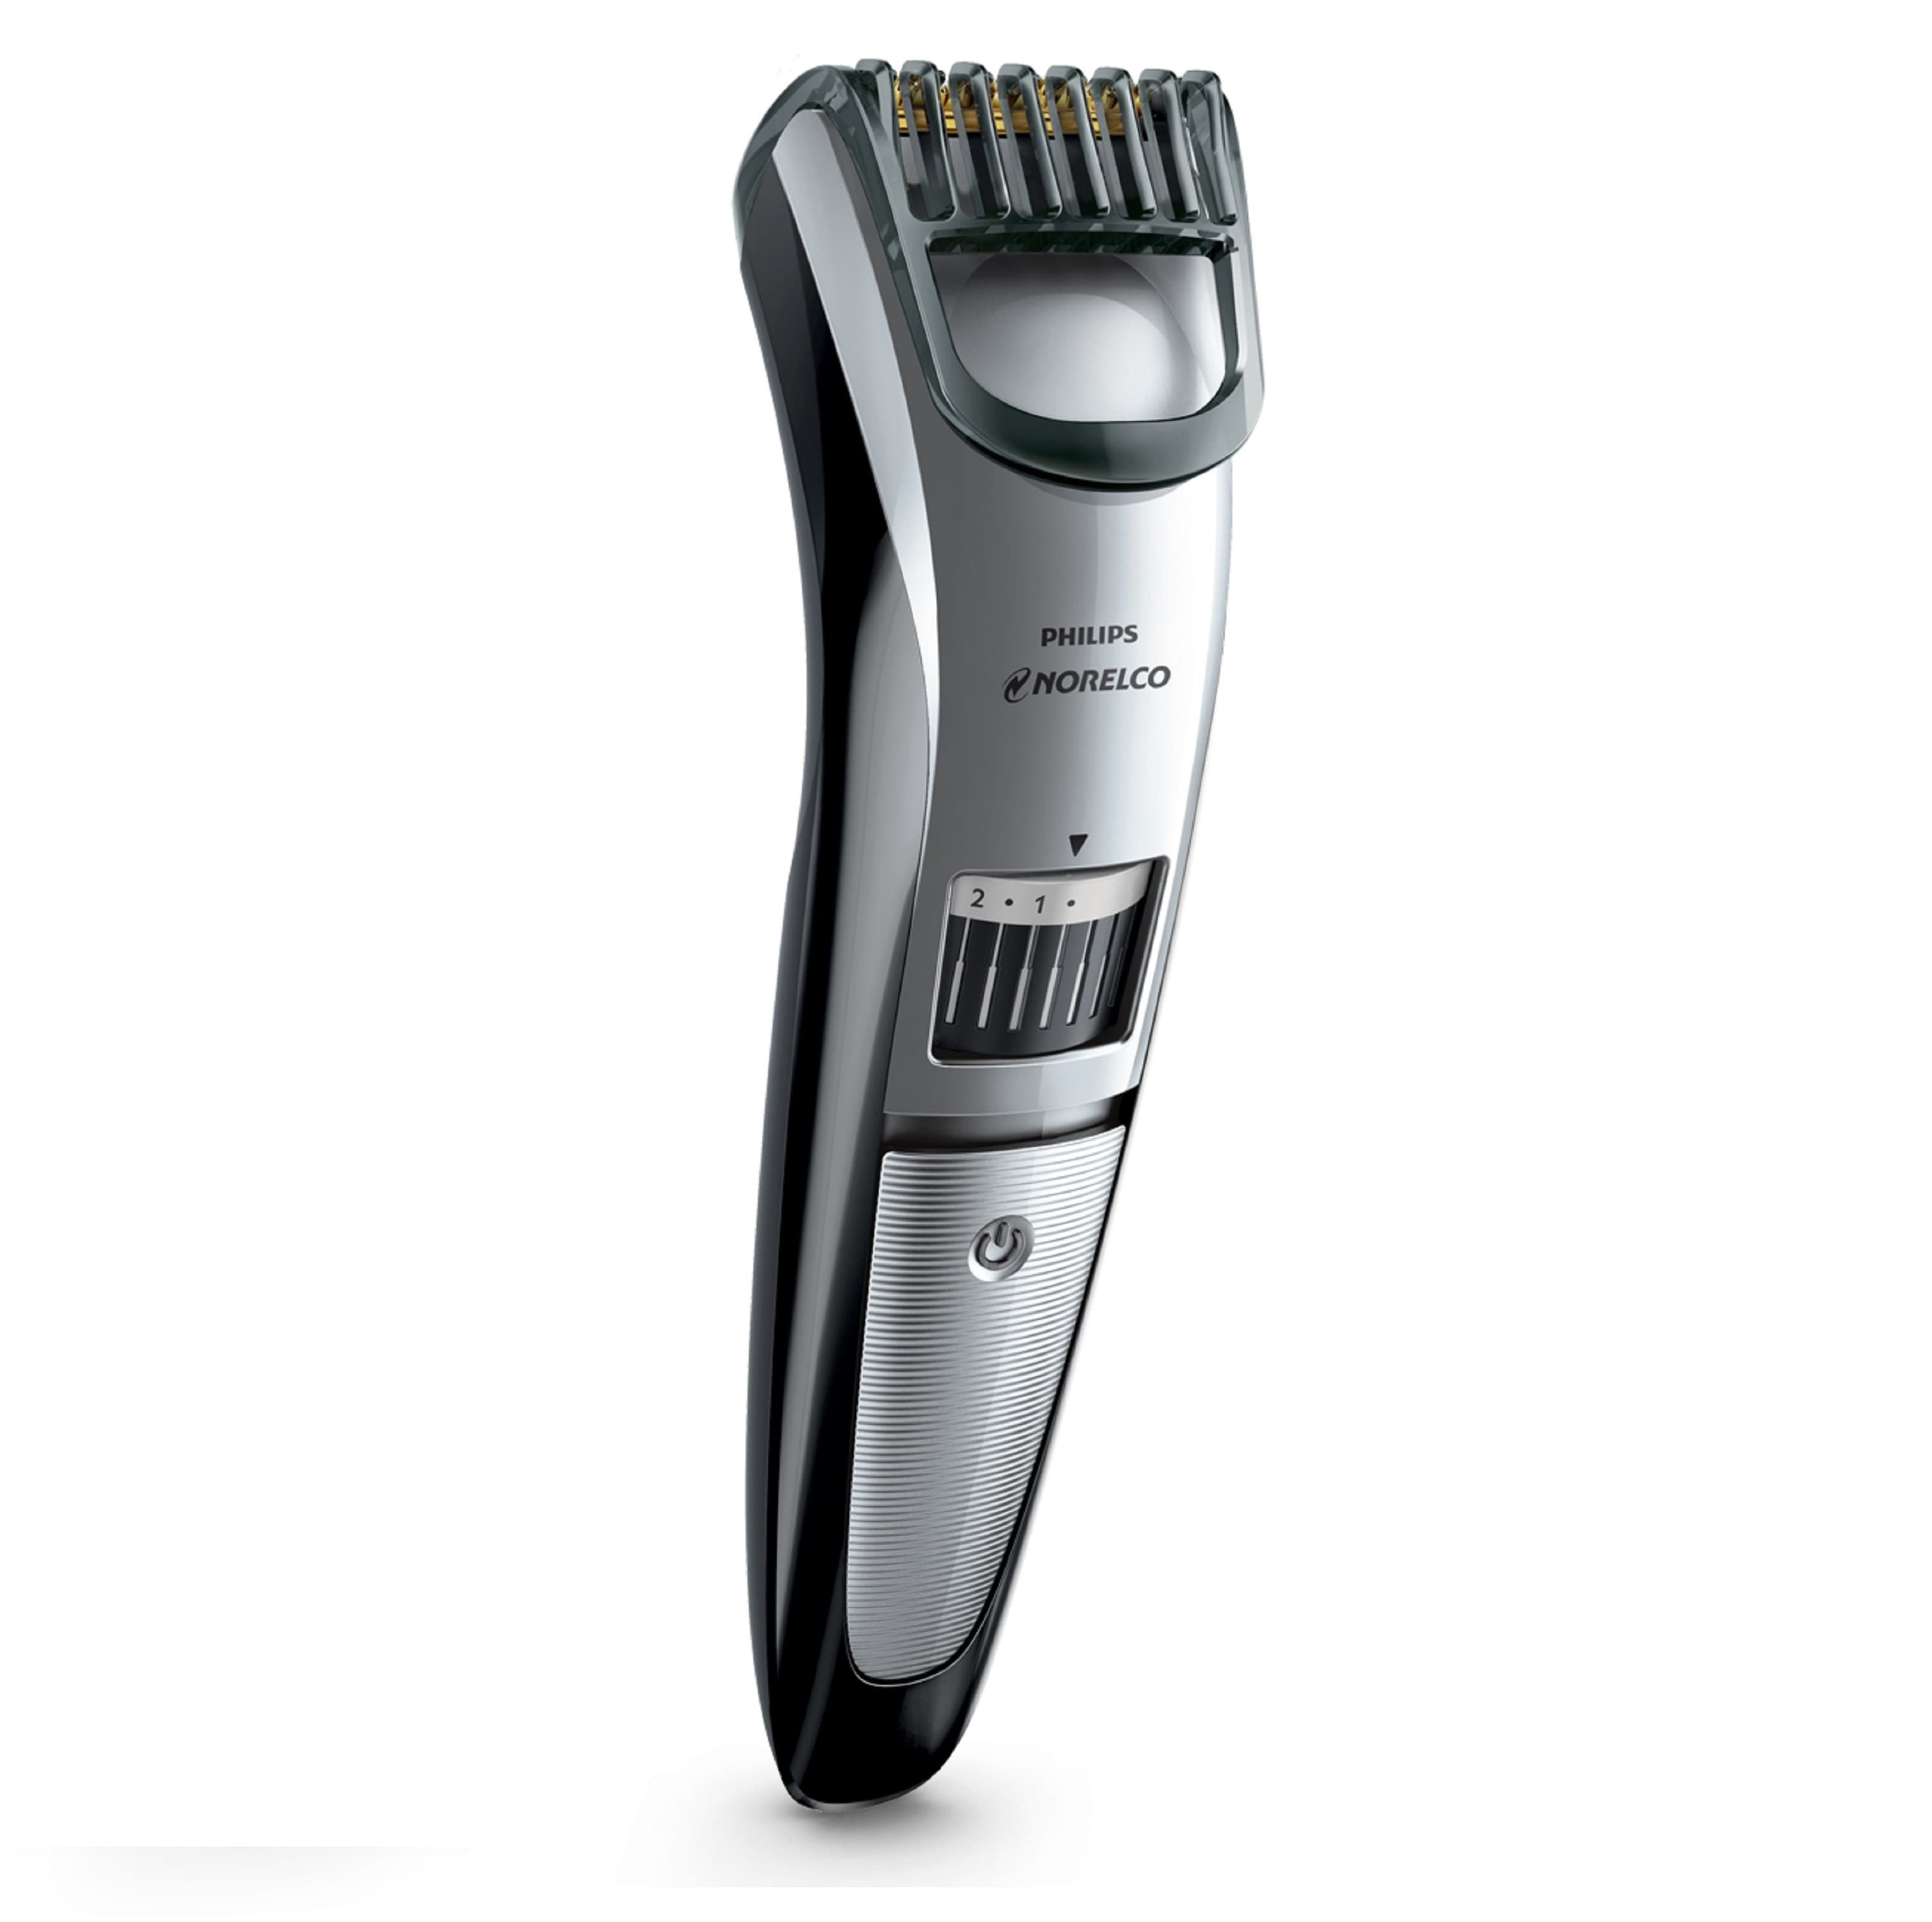 philips norelco beard trimmer 3500 photo - 1